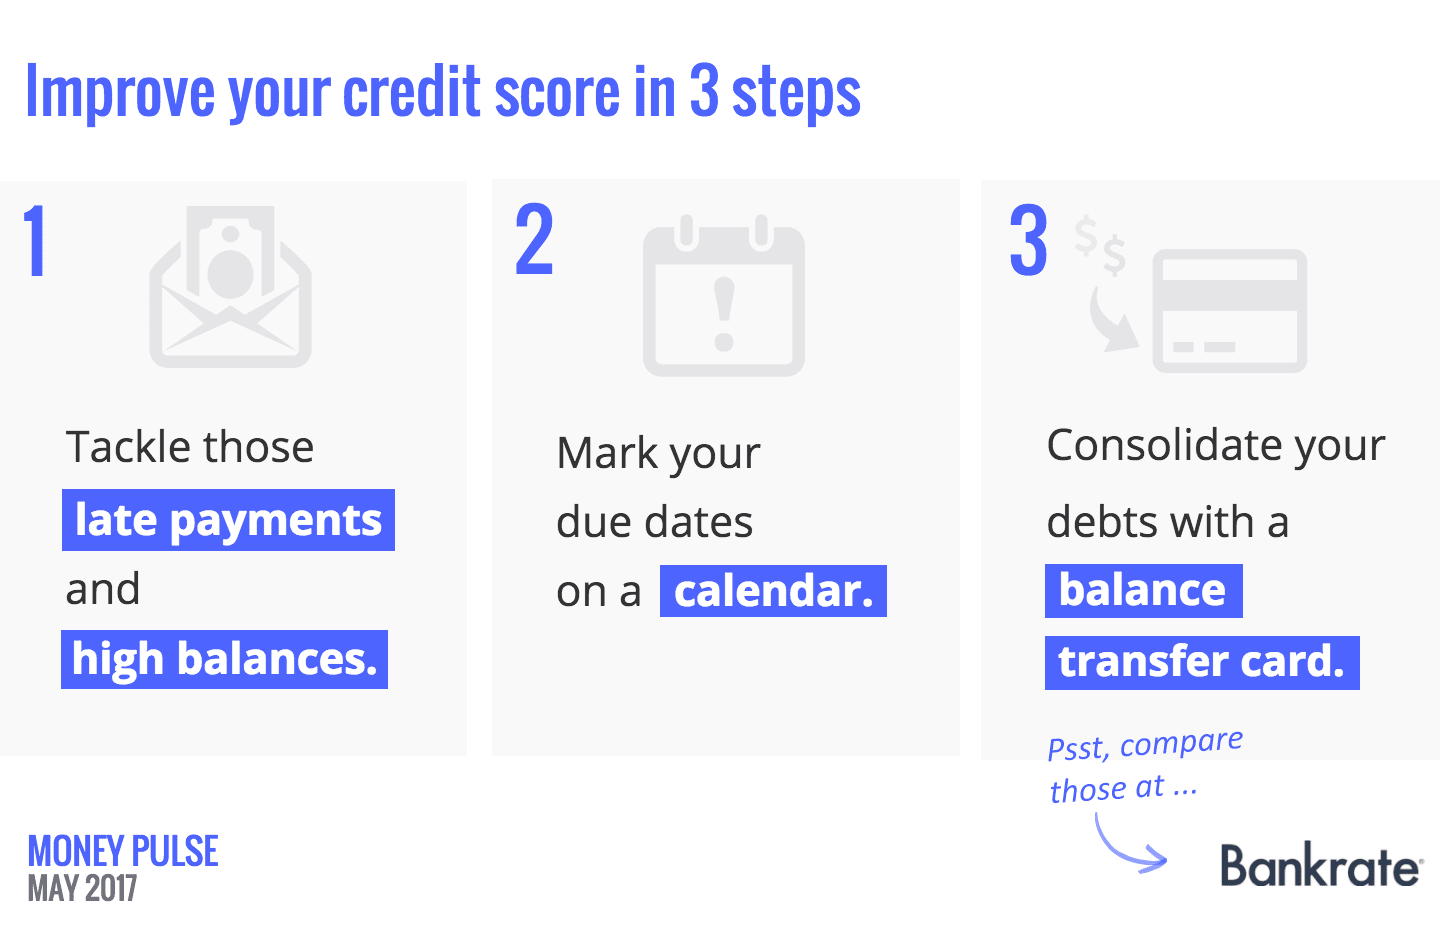 Improve your credit score in 3 steps